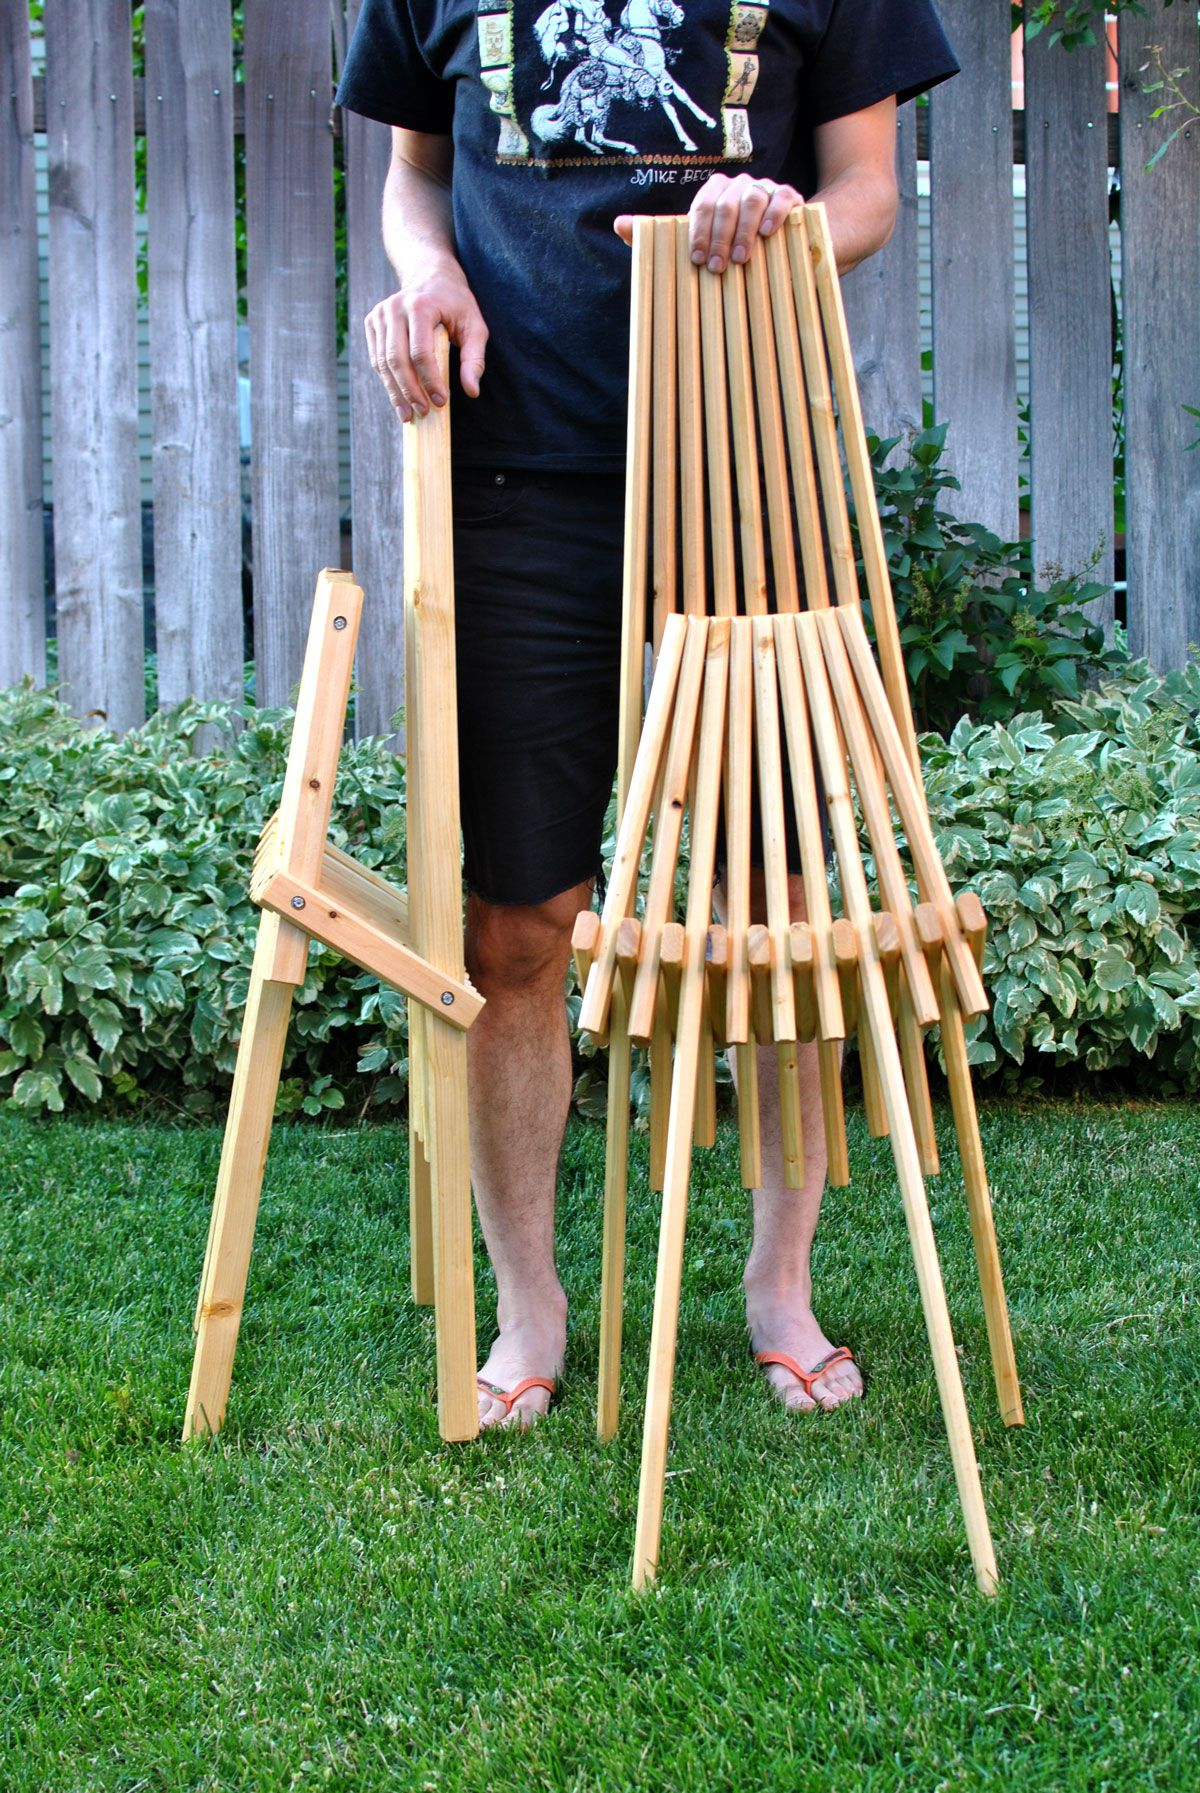 How to make your own modern chairs on a budget | Diy chair ...